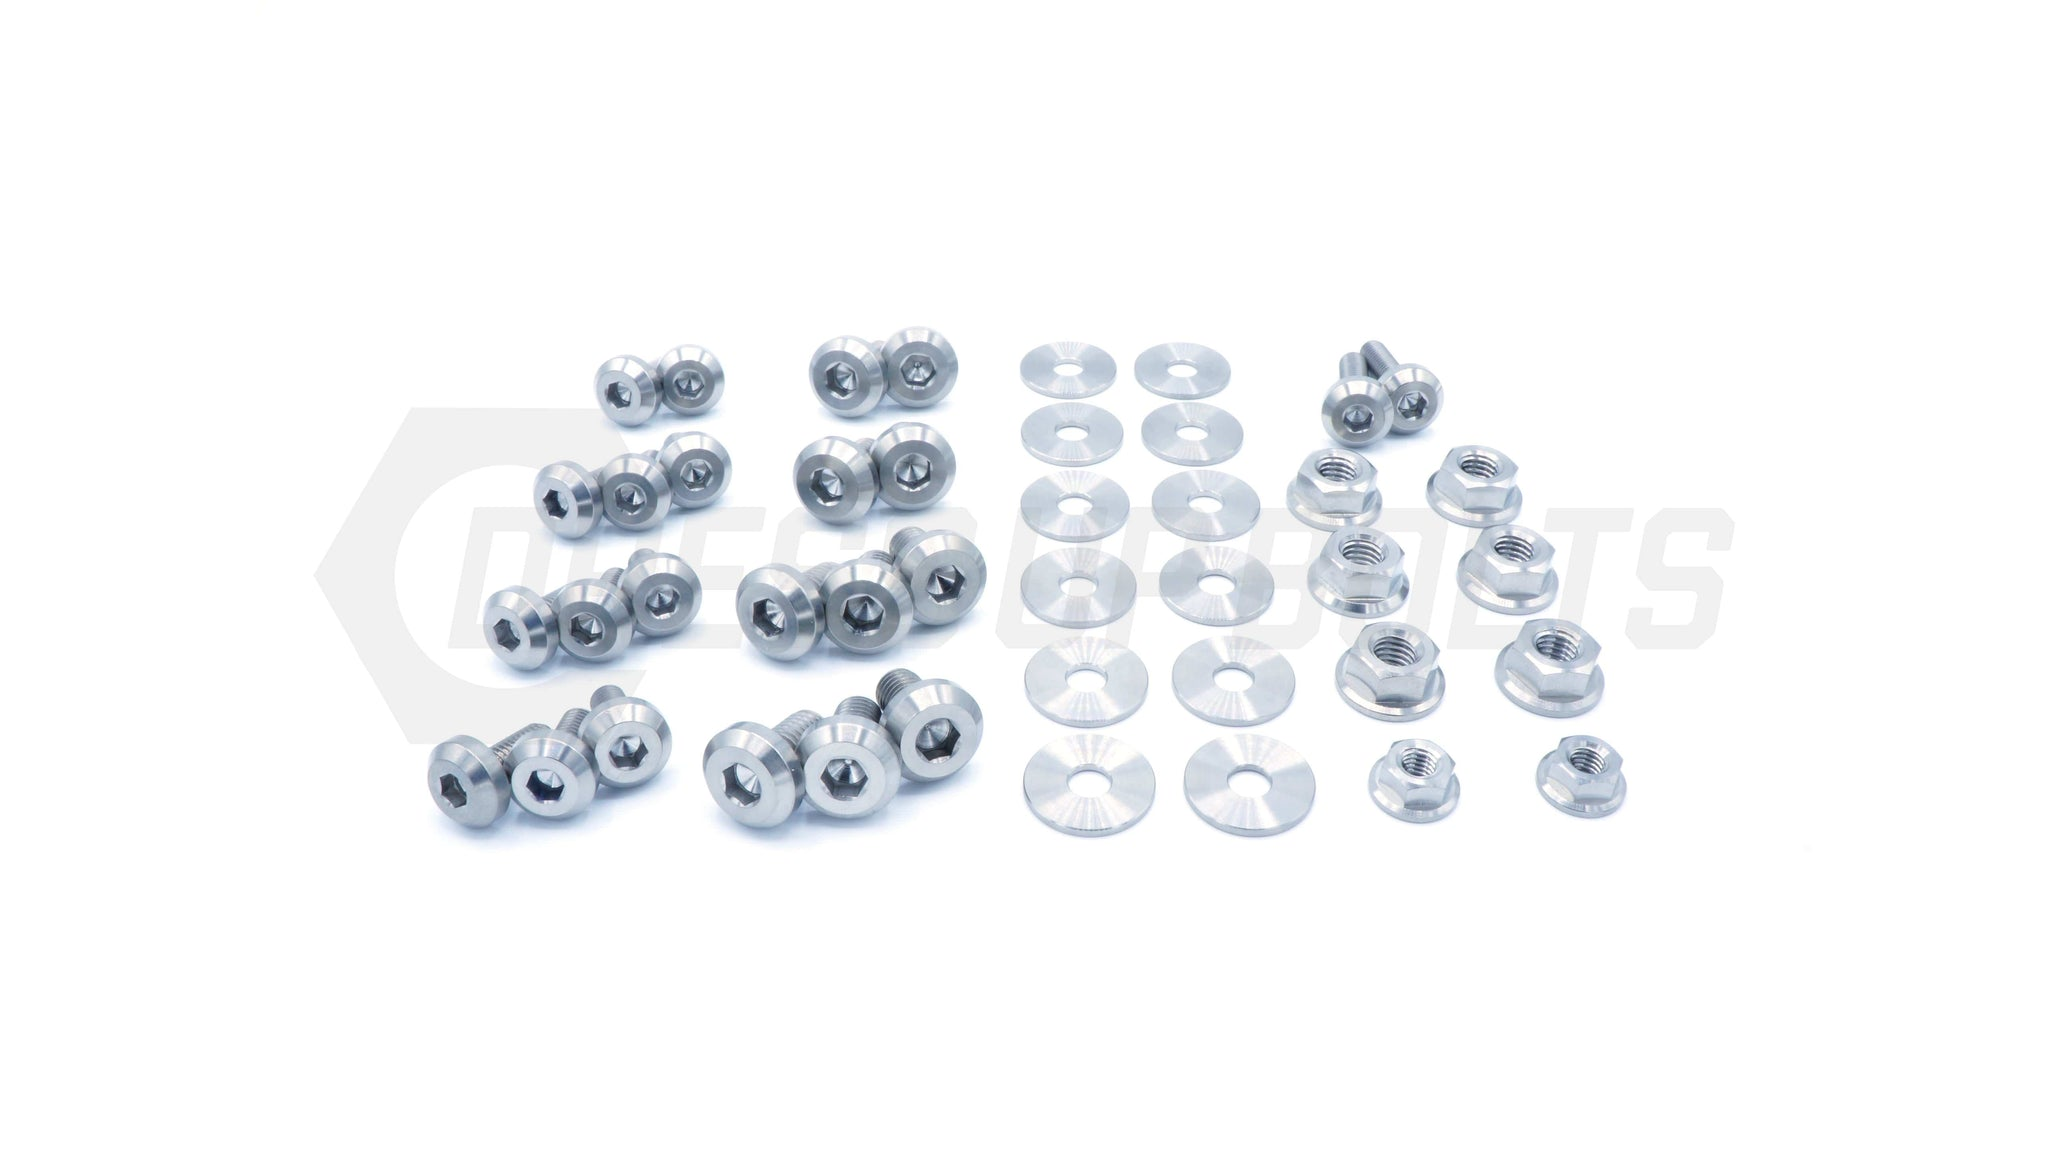 Subaru WRX/STI (2006-2007) Titanium Dress Up Bolts Engine Bay Kit - DressUpBolts.com